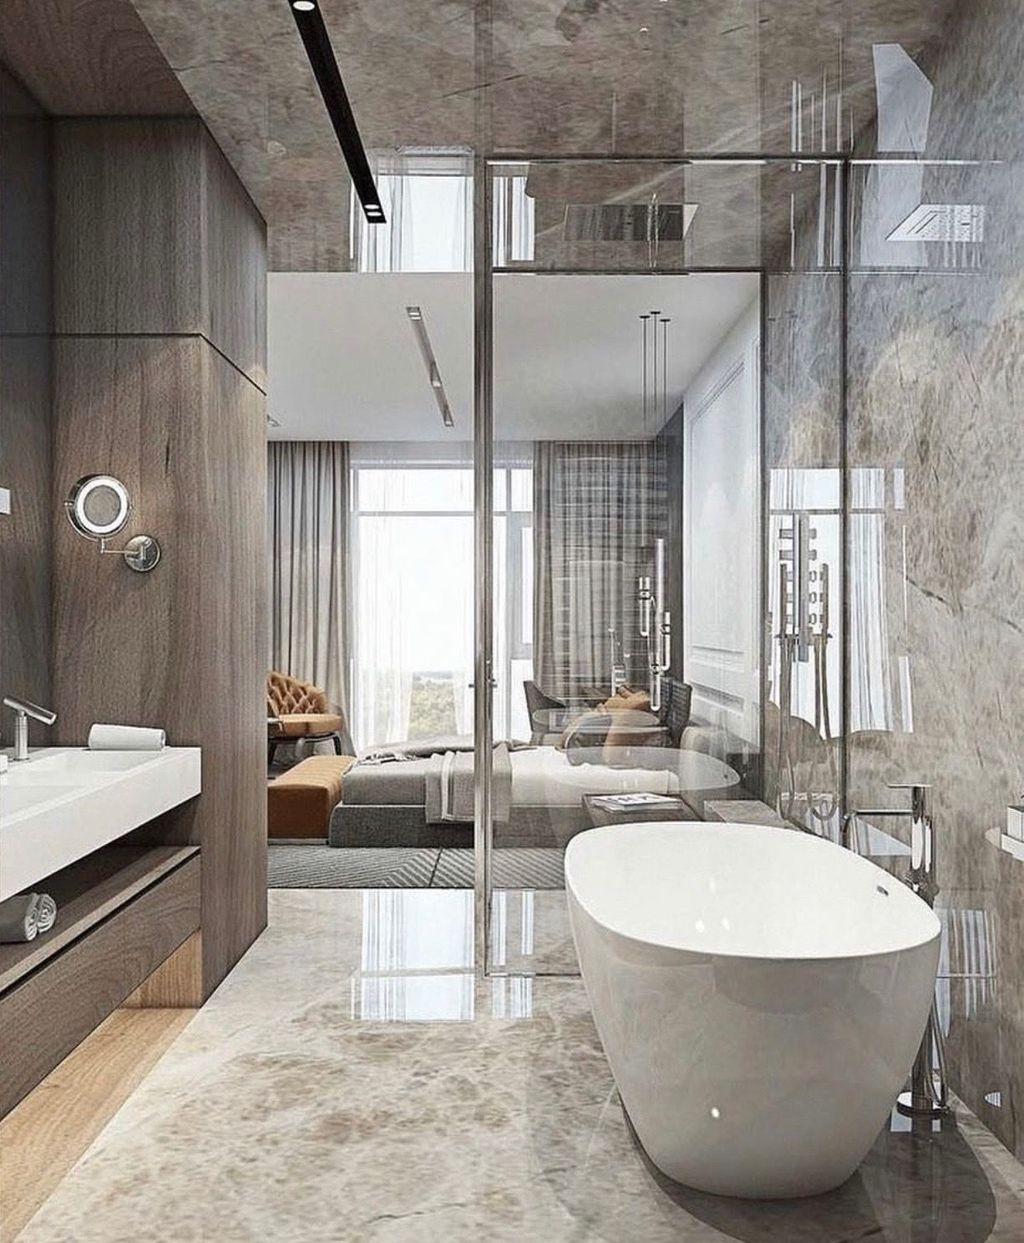 Luxury Bathroom Design And Decor Ideas 25